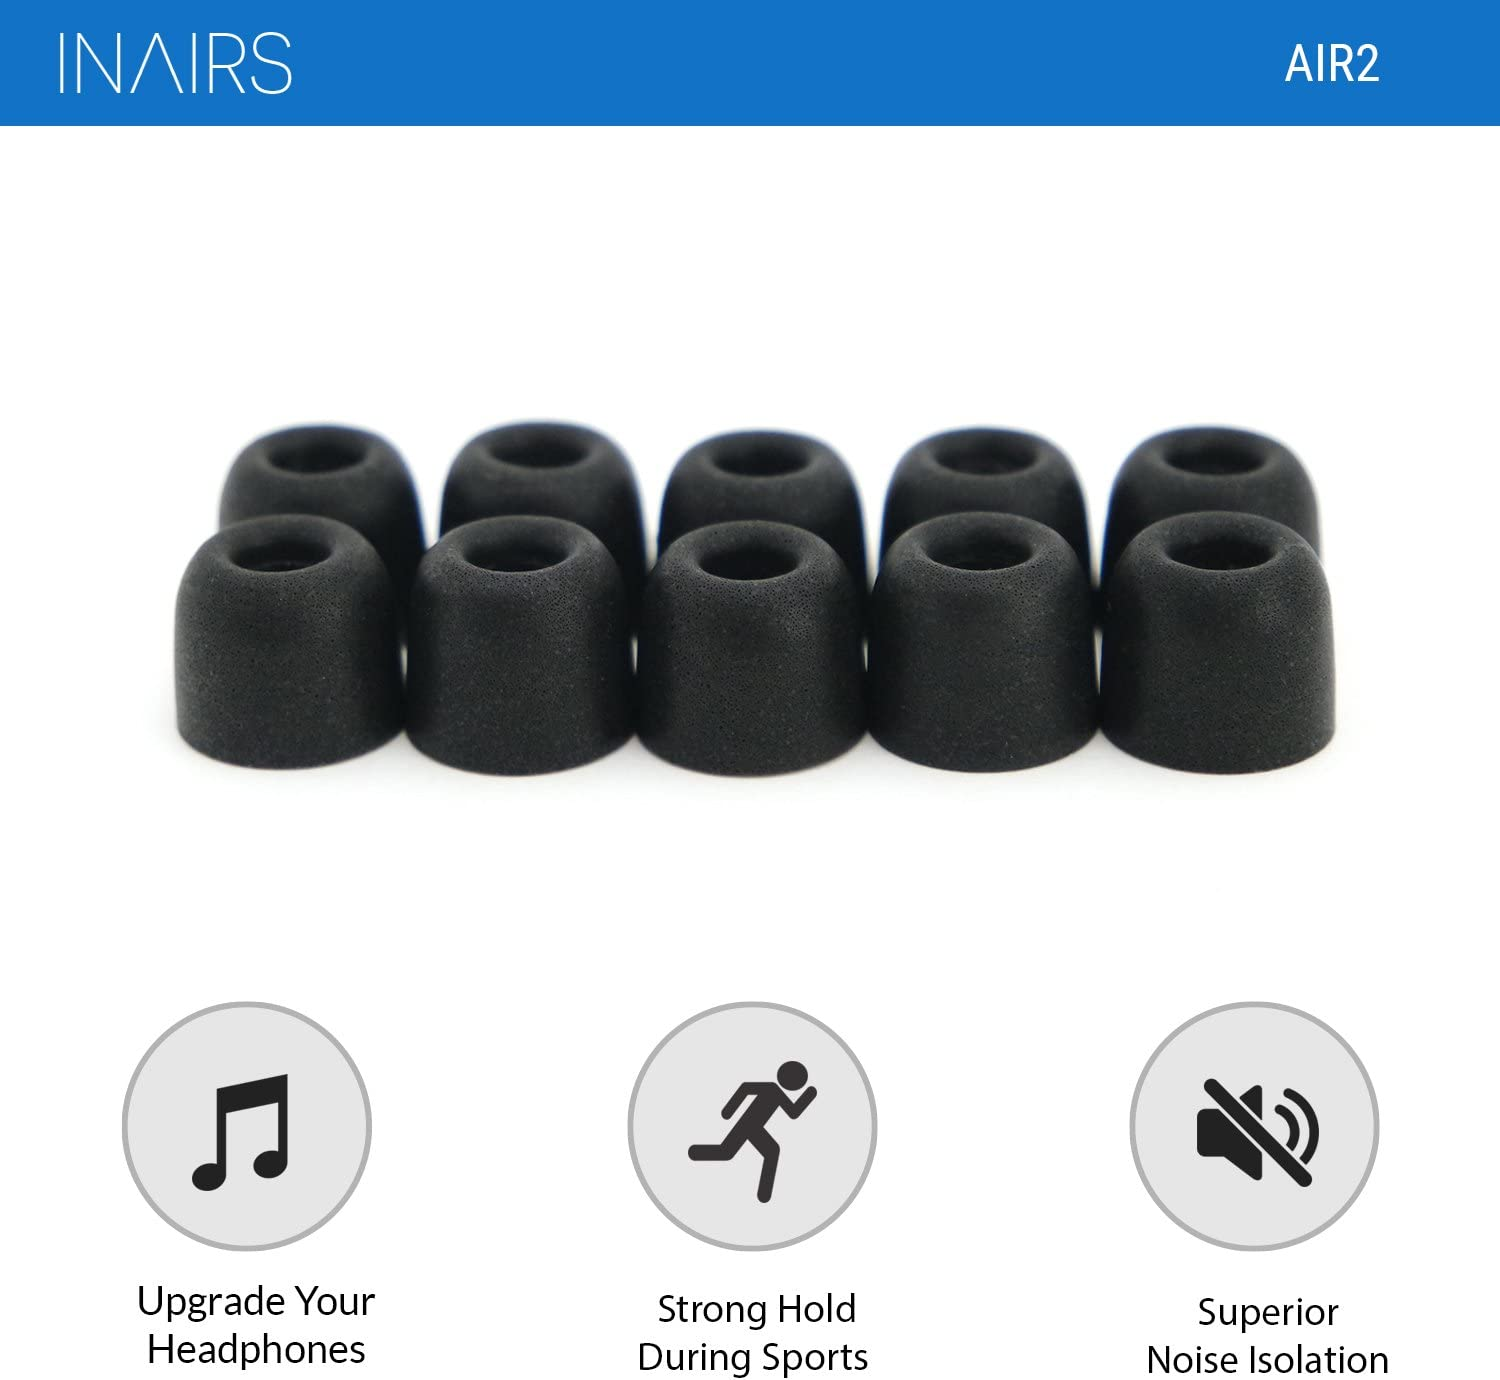 Noise Isolation Earphone Cushions for In Ear bud /& Headphones - 5 Pairs of Effective Noise Cancelling In Ear Foam Tips Rich Bass IN/ΛIRS AIR1 Replacement for Silicone bud Memory Foam Earpads L